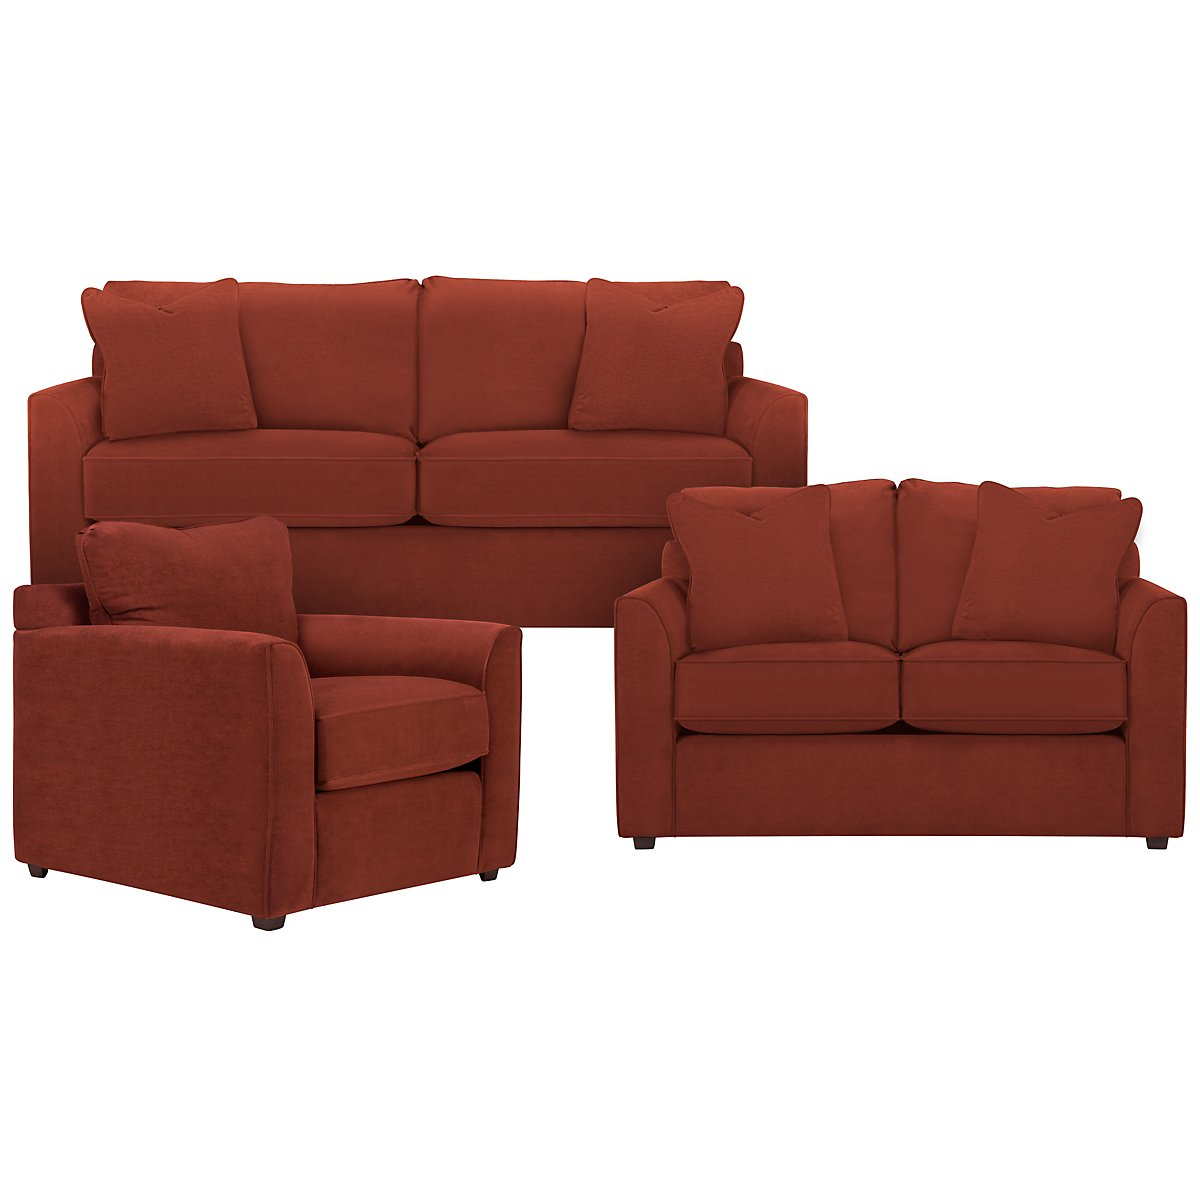 Express3 Red Microfiber Living Room